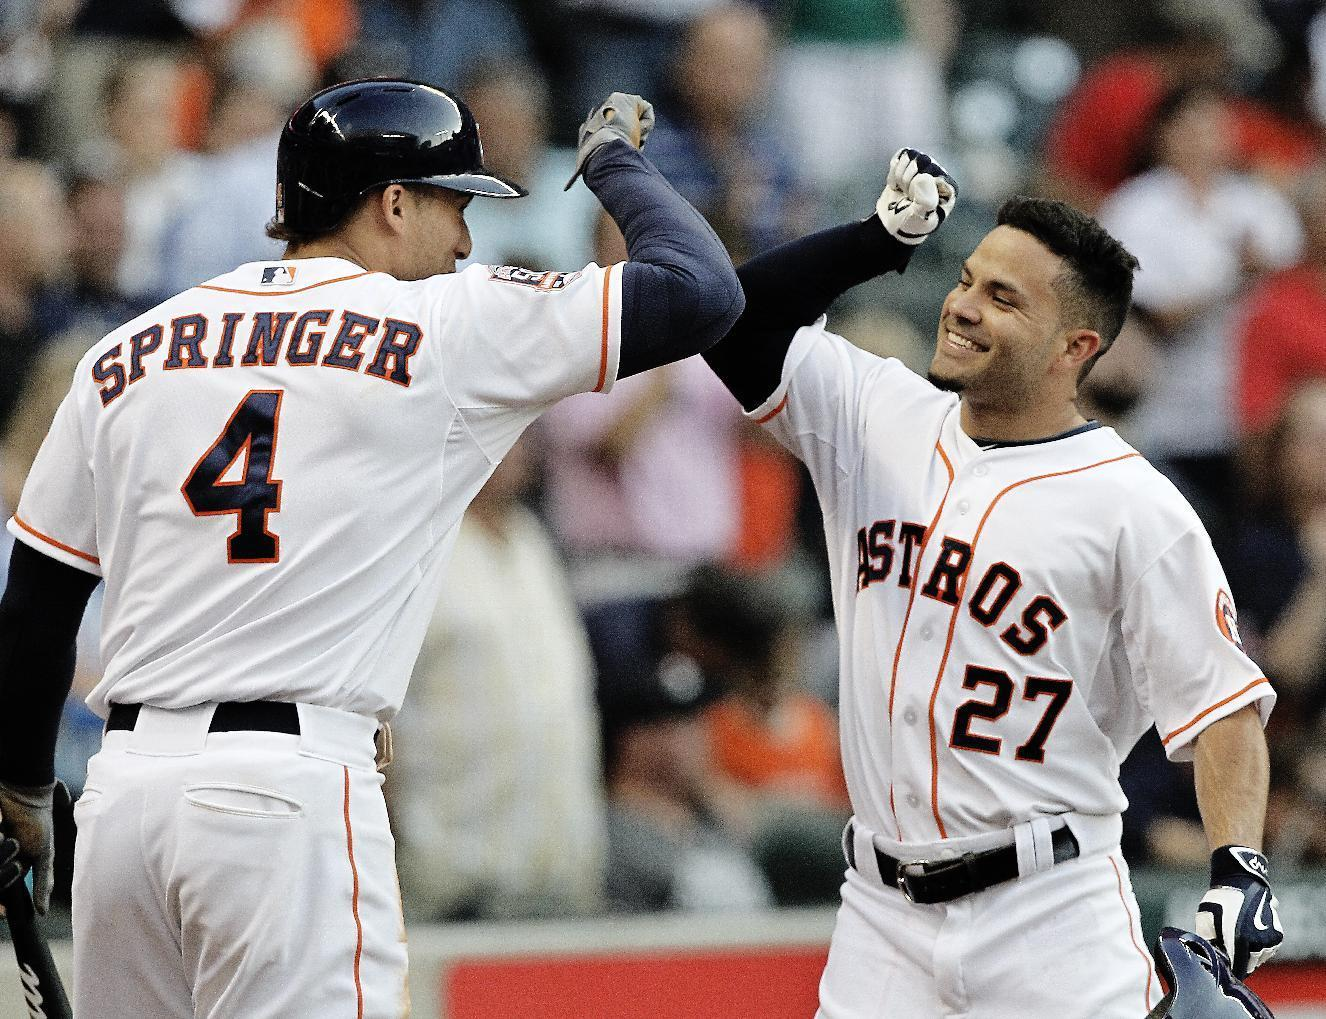 Astros win 9th in row, McHugh gets HR help to beat Mariners